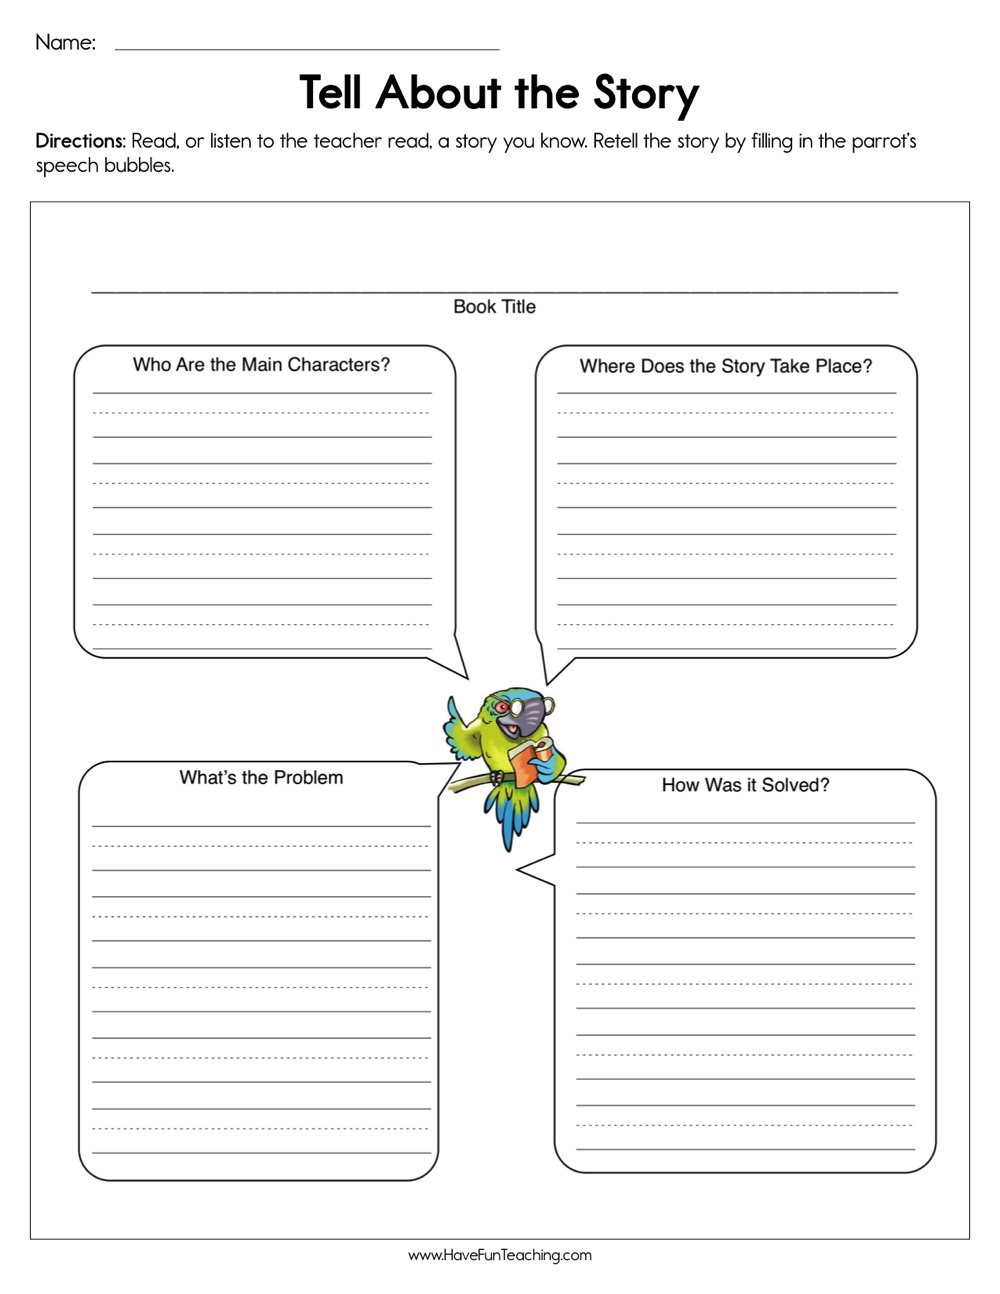 Elements Of A Story Worksheet Tell About the Story Worksheet